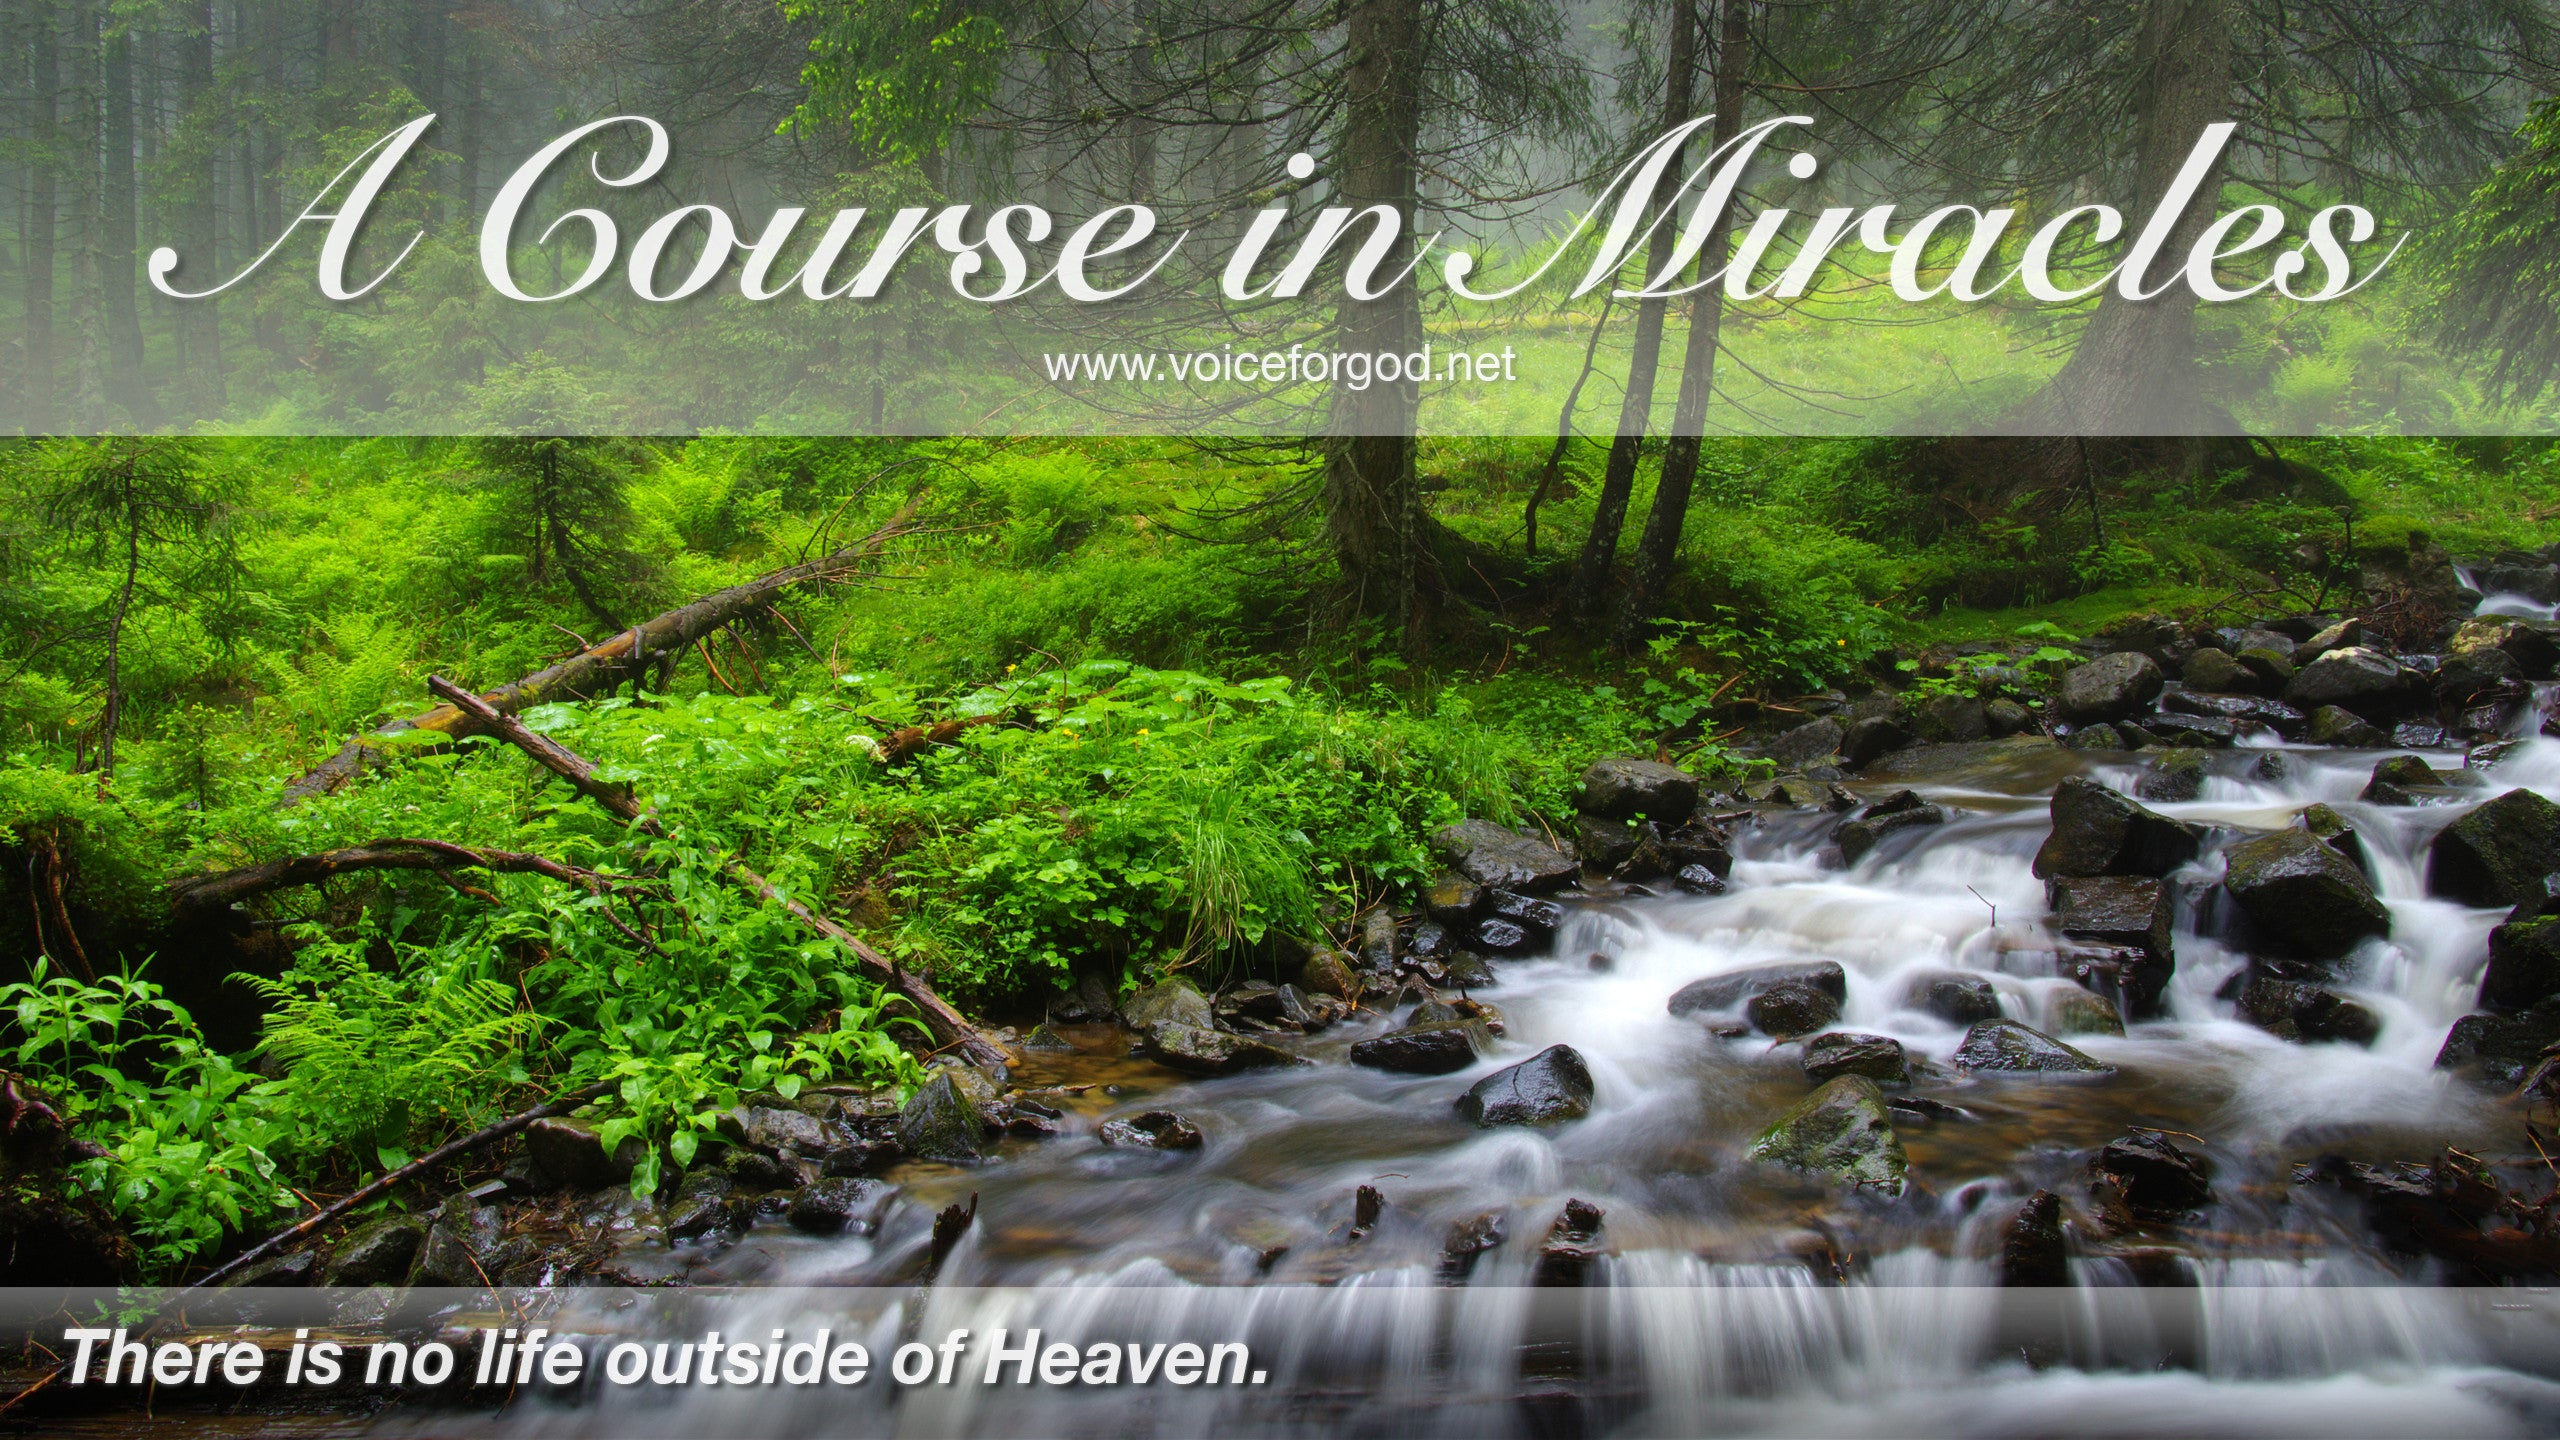 Acim Acim Quote 0098 A Course In Miracles Quotes Voice For God